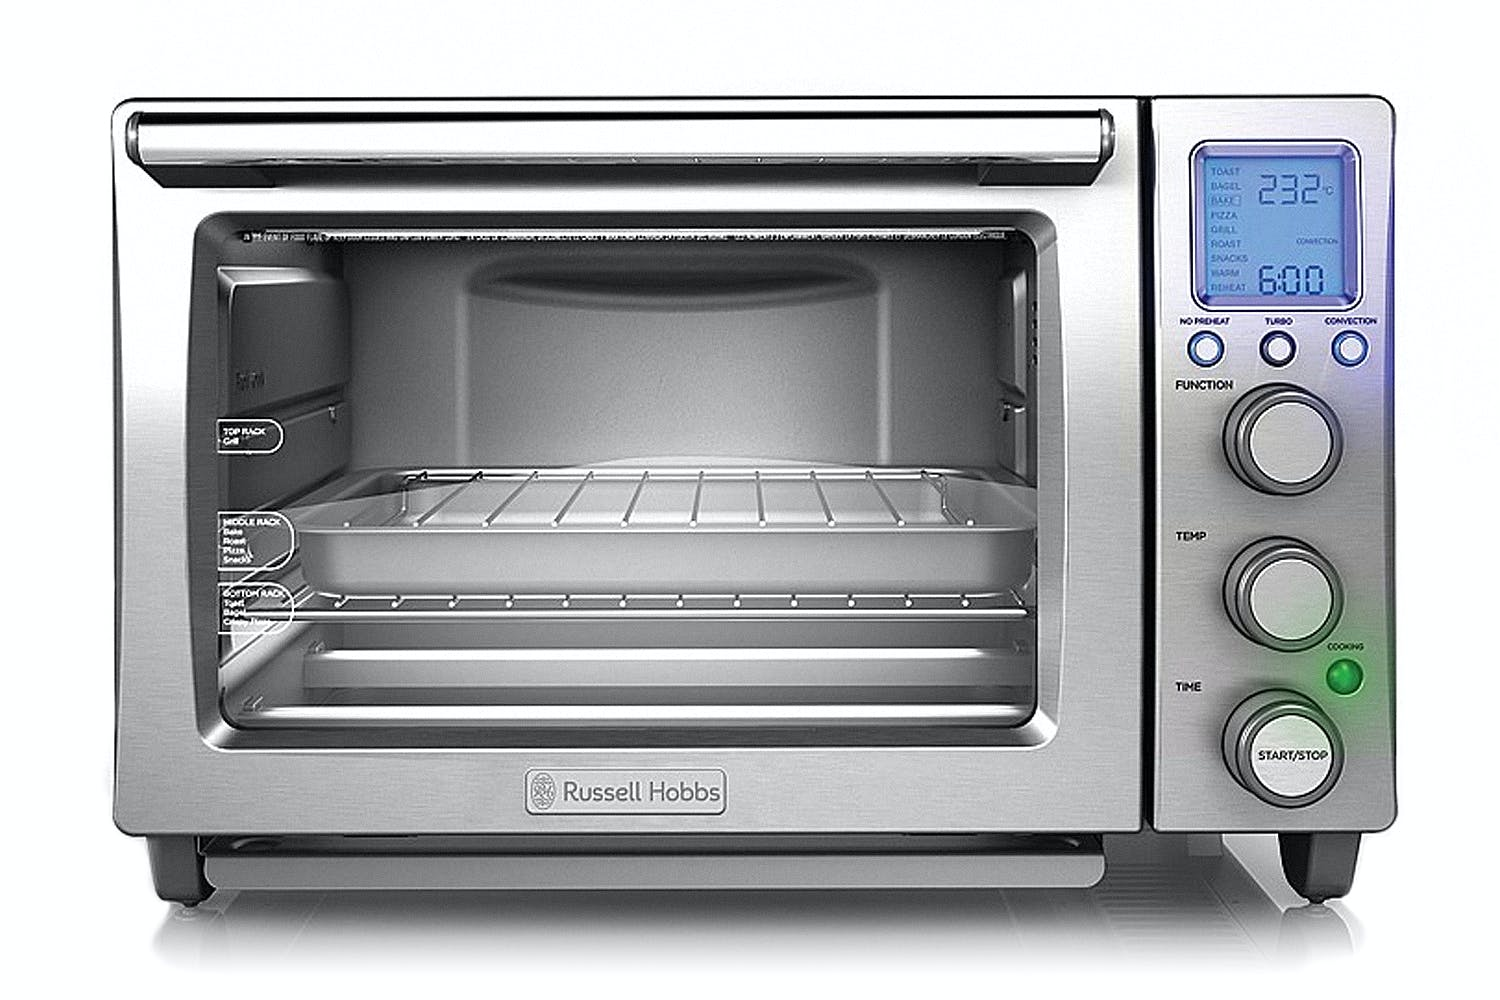 russell hobbs performance digital convection oven | harvey norman